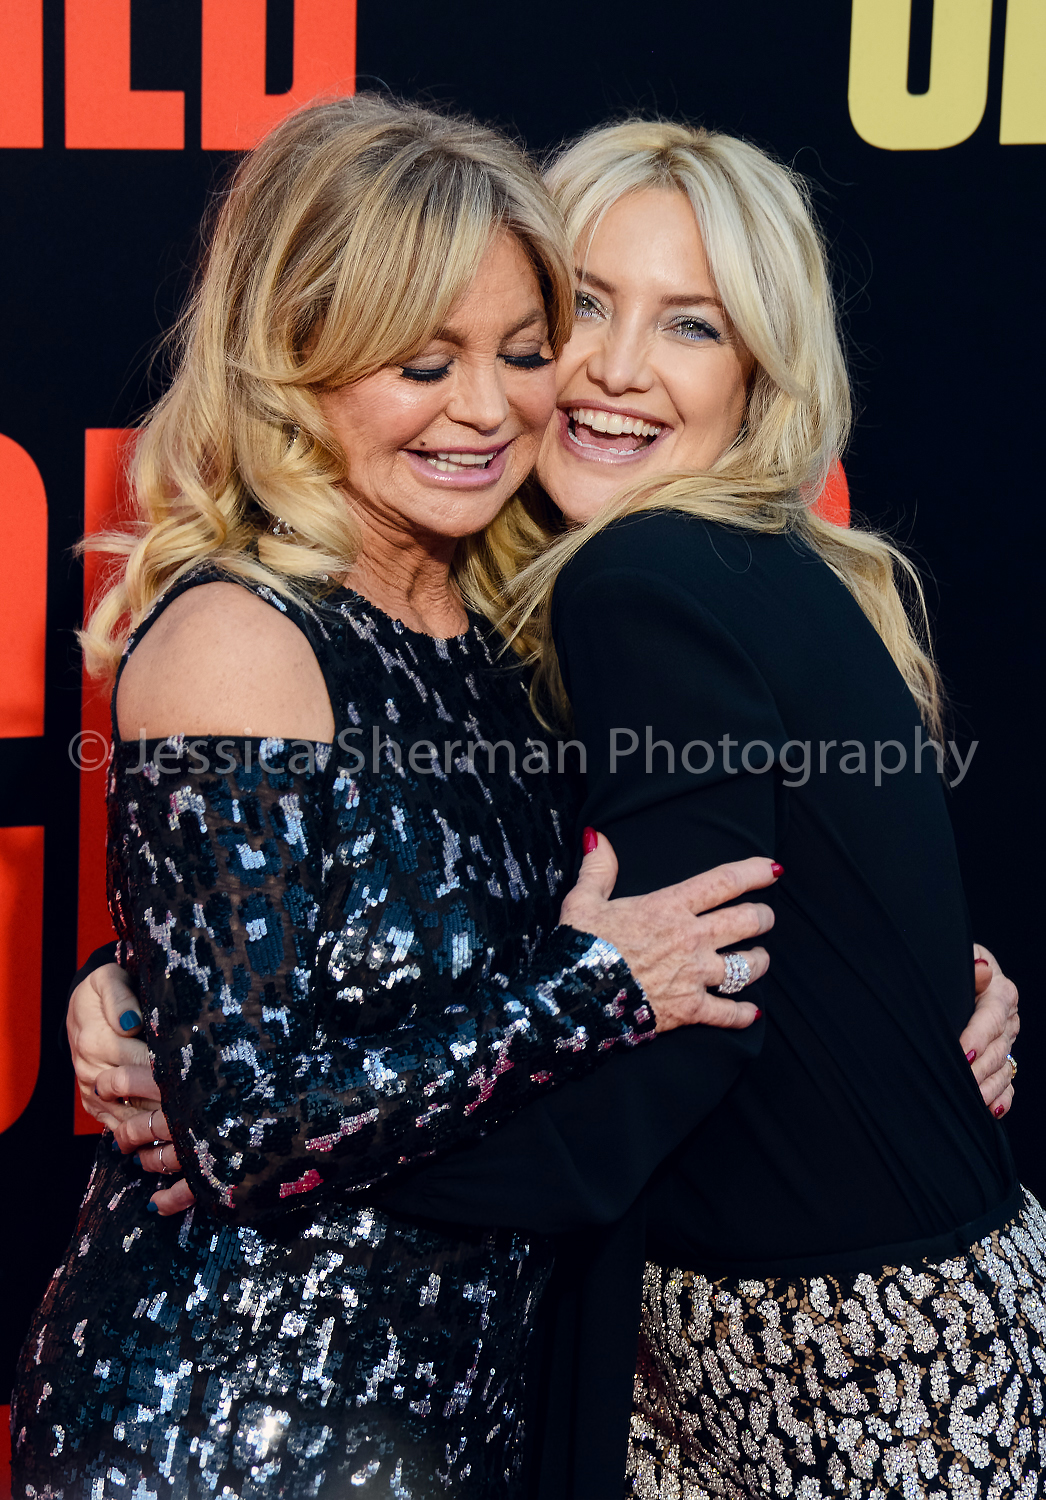 Goldie_Hawn_Kate_Hudson_Jessica_Sherman (1 of 1).jpg